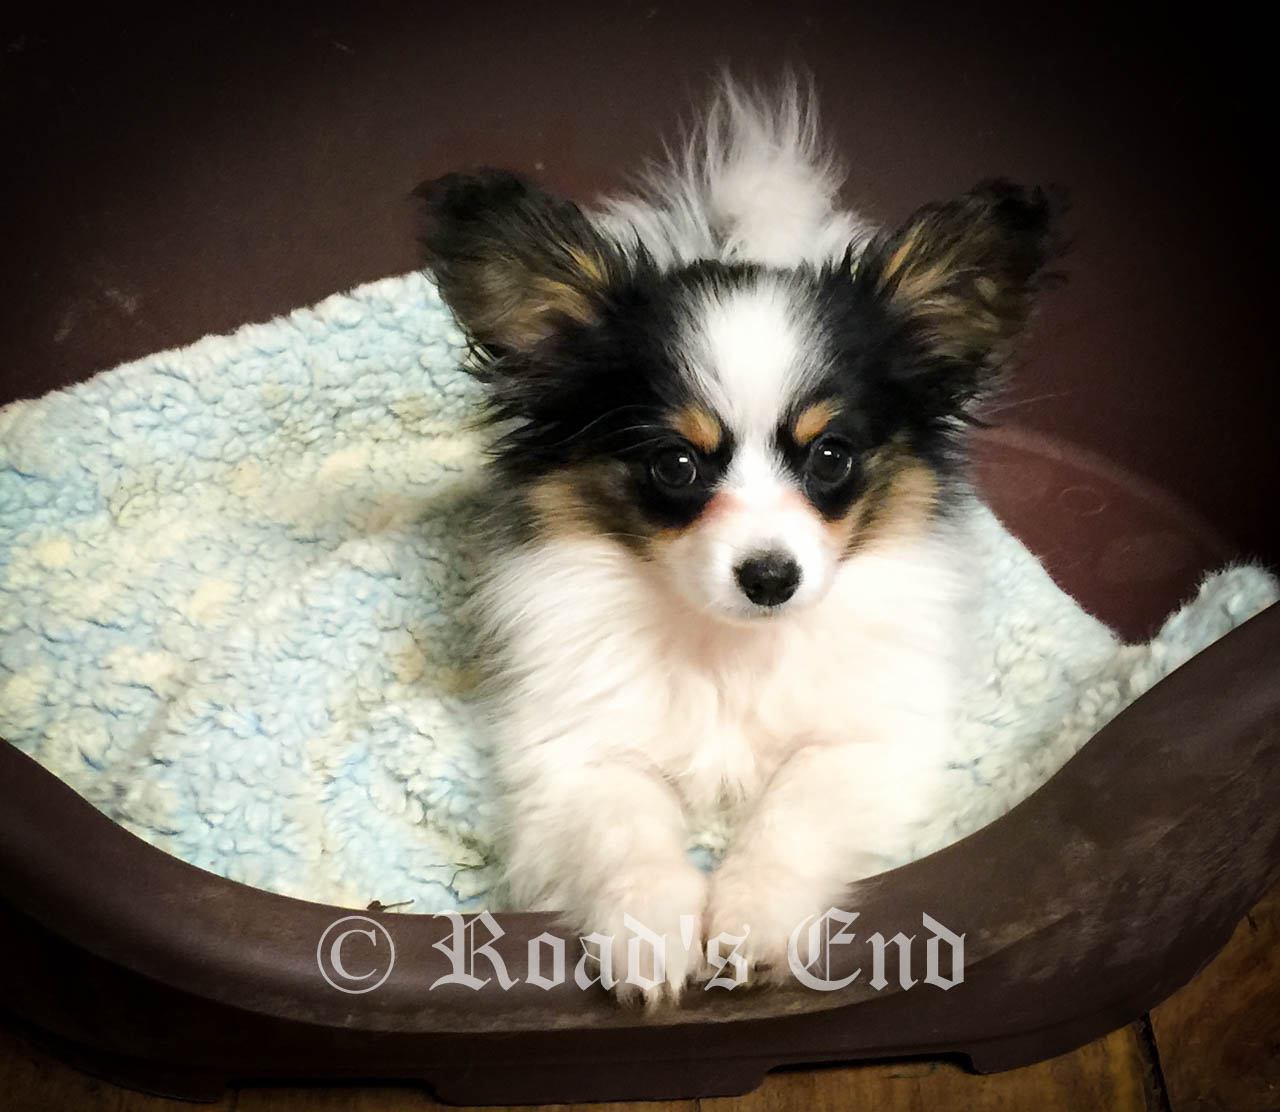 Roads End Papillons 12 Week Old Papillon Puppy